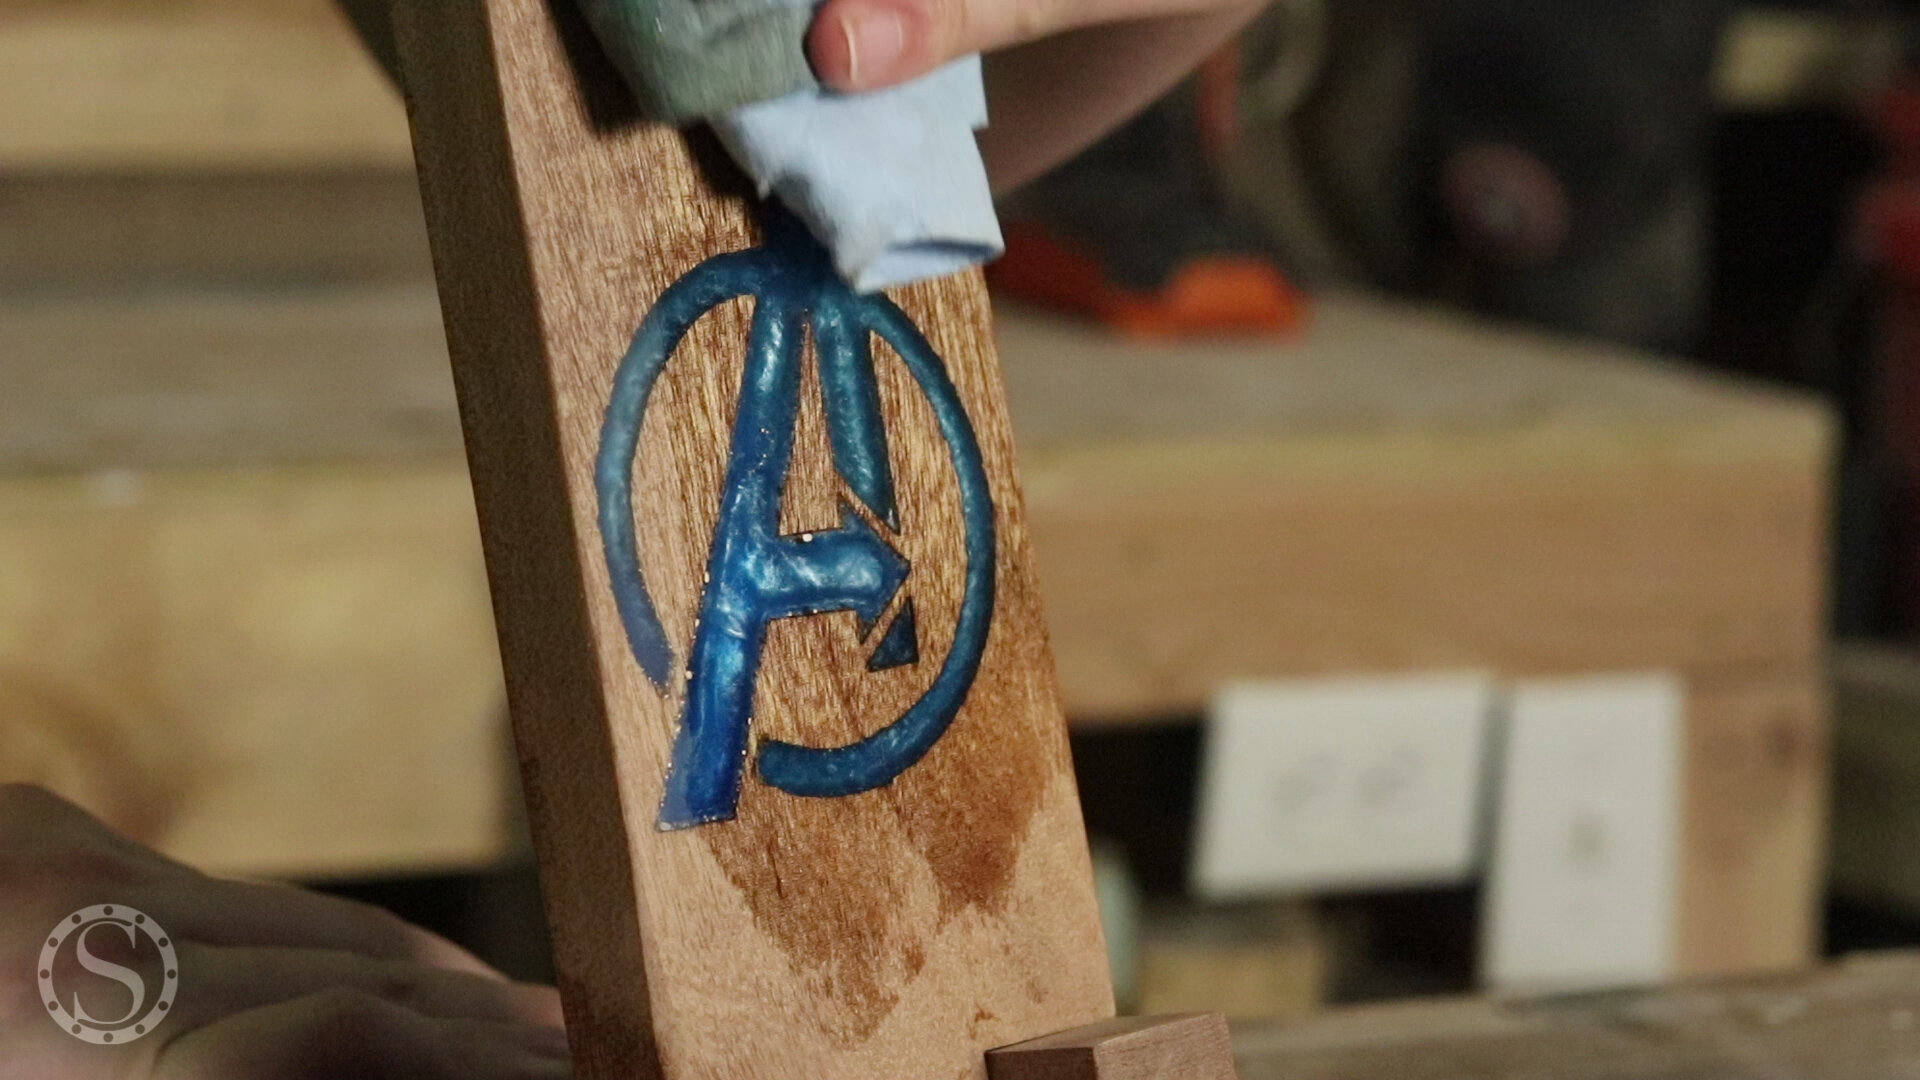 Avengers Phone Holder - Applying Simple Finish to the Mahogany and Epoxy